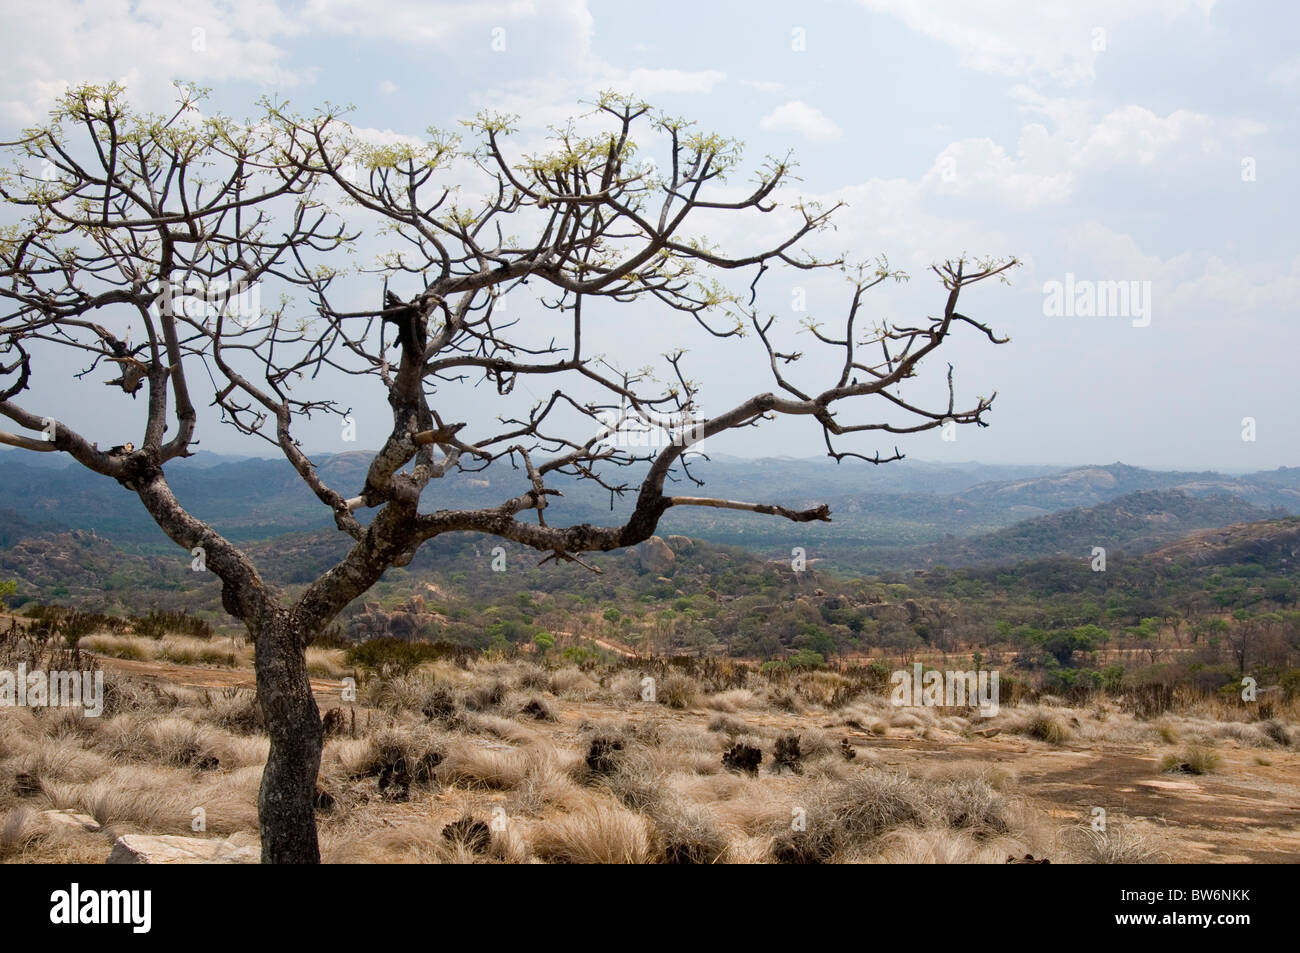 Landscape near the grave of Cecil Rhodes at World's View in the Matopos Hills, western Zimbabwe - Stock Image